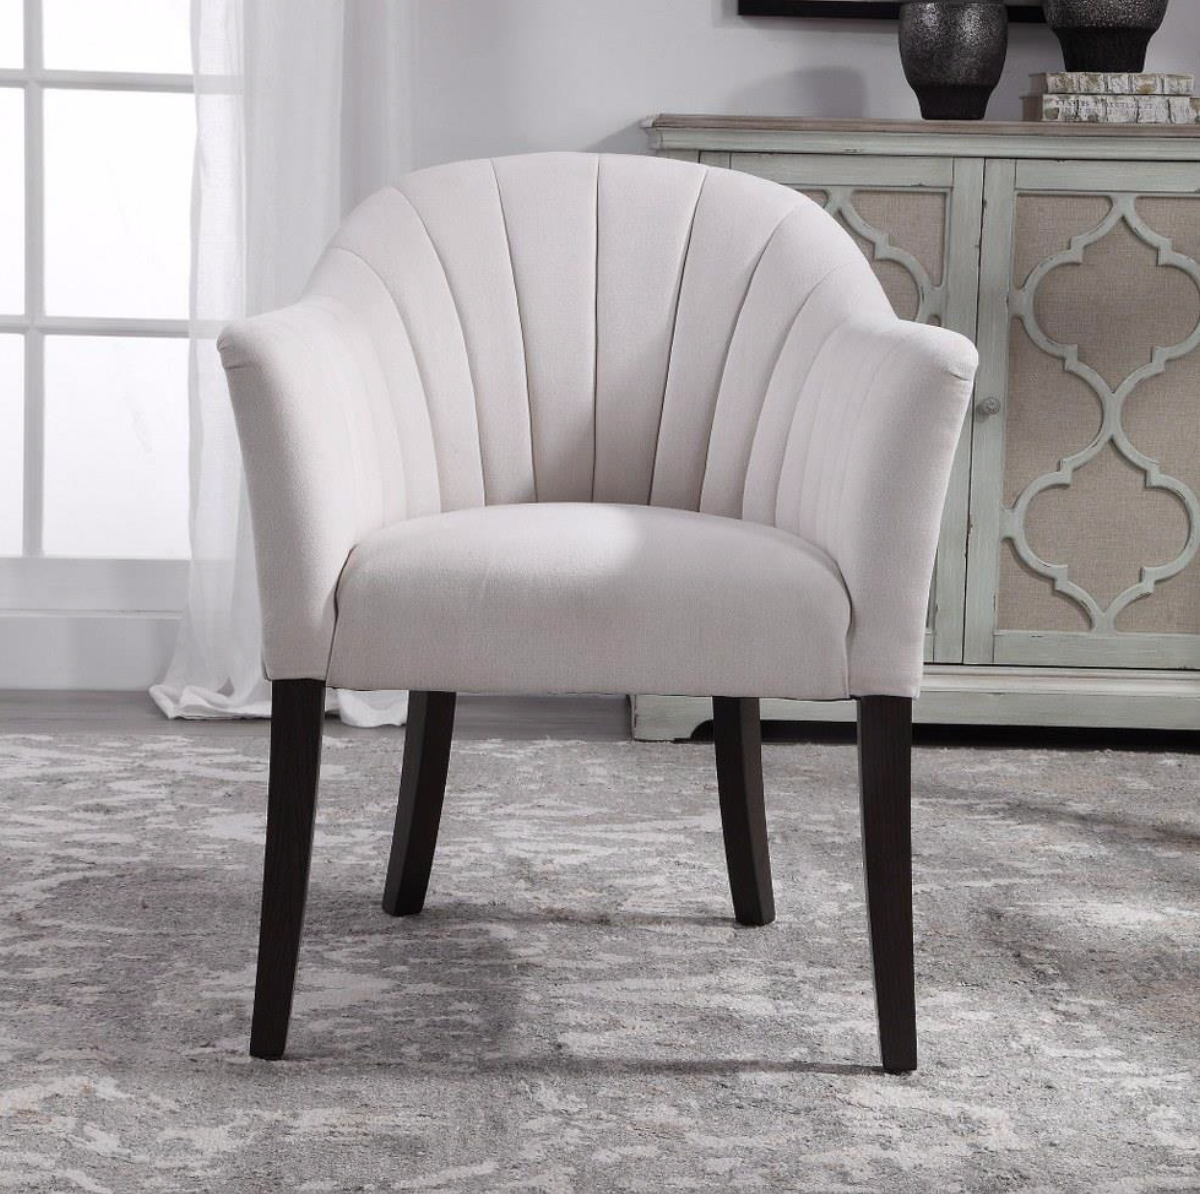 Tremendous Lavana 33 Accent Chair In 2019 Our Timeless Furniture Bralicious Painted Fabric Chair Ideas Braliciousco